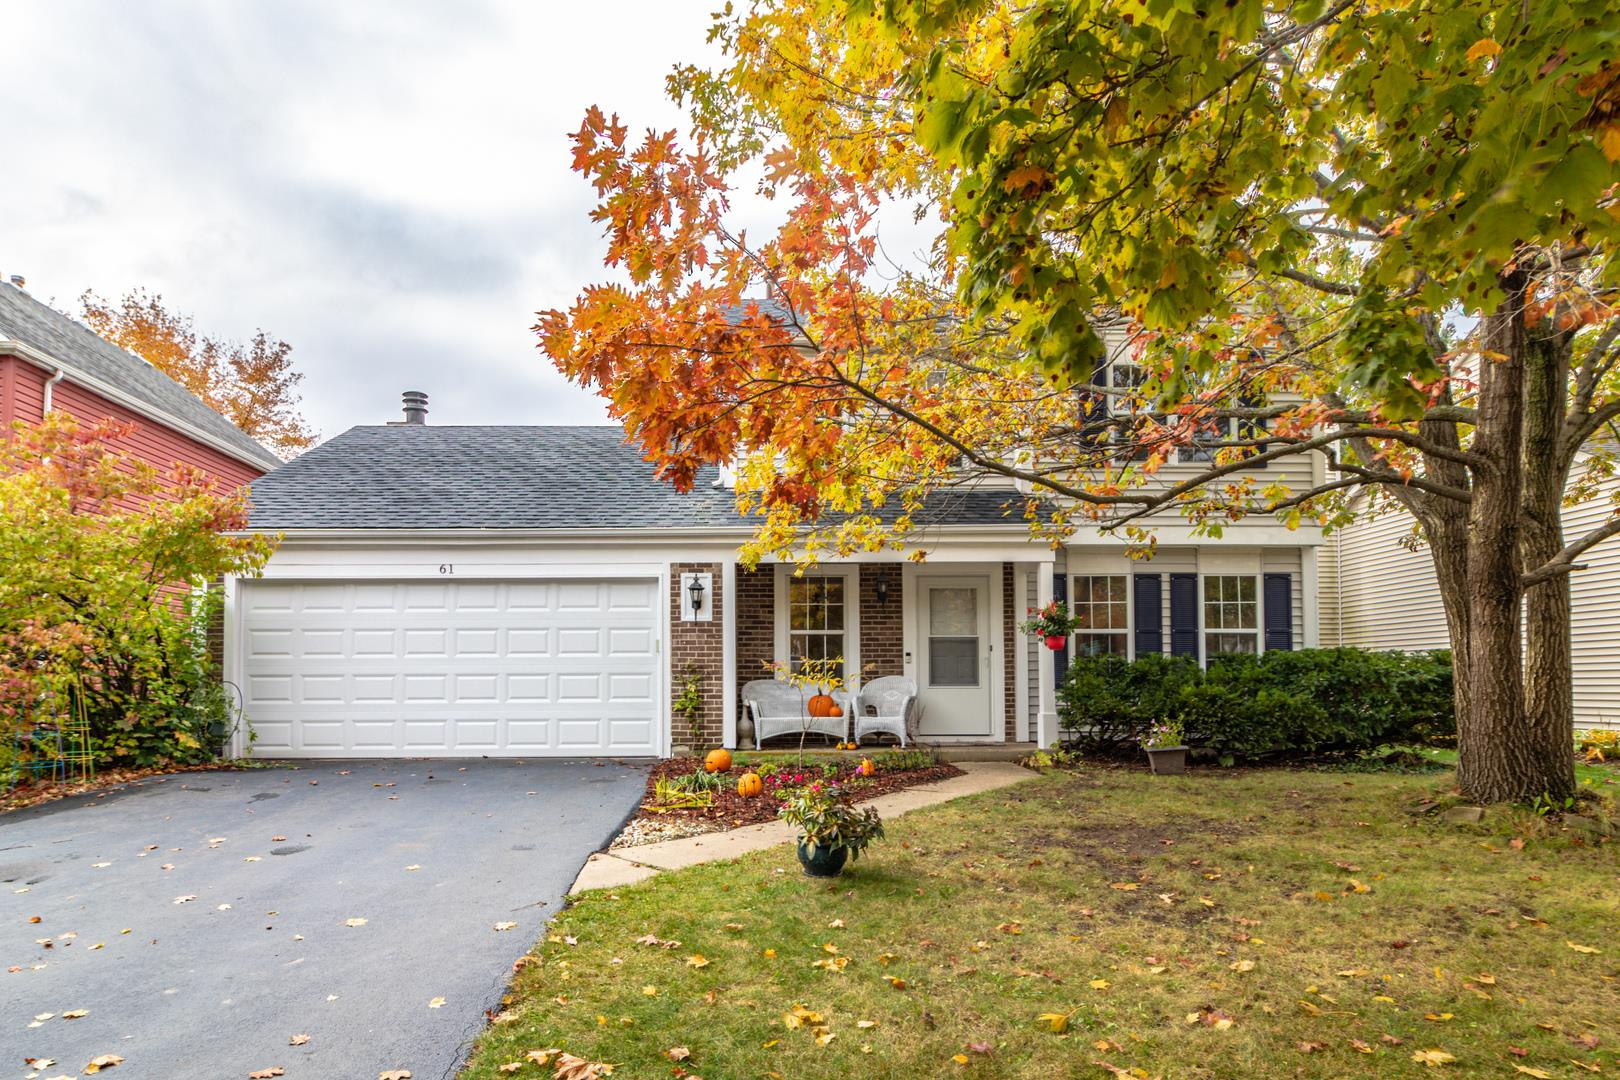 61 S Windsor Place, Mundelein, IL 60060 - #: 10914327